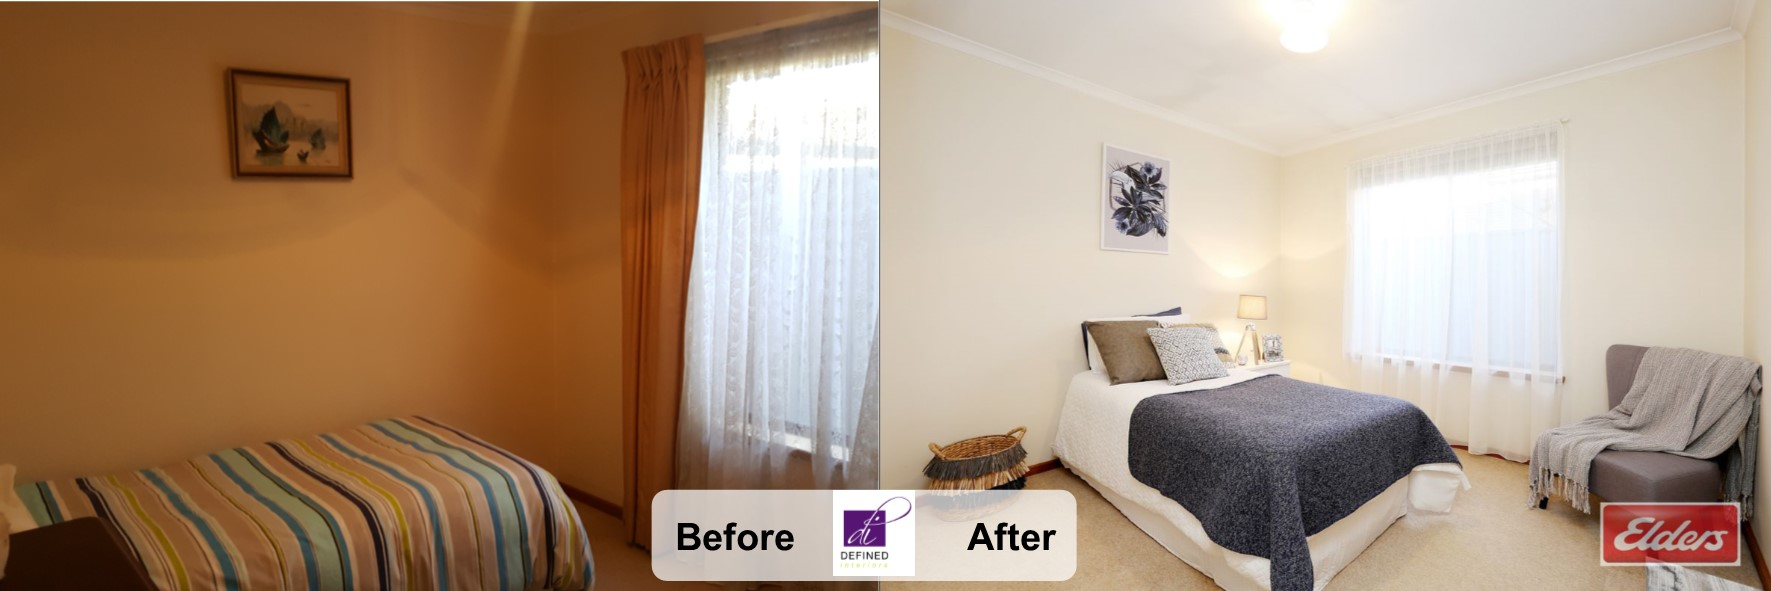 before-and-after5